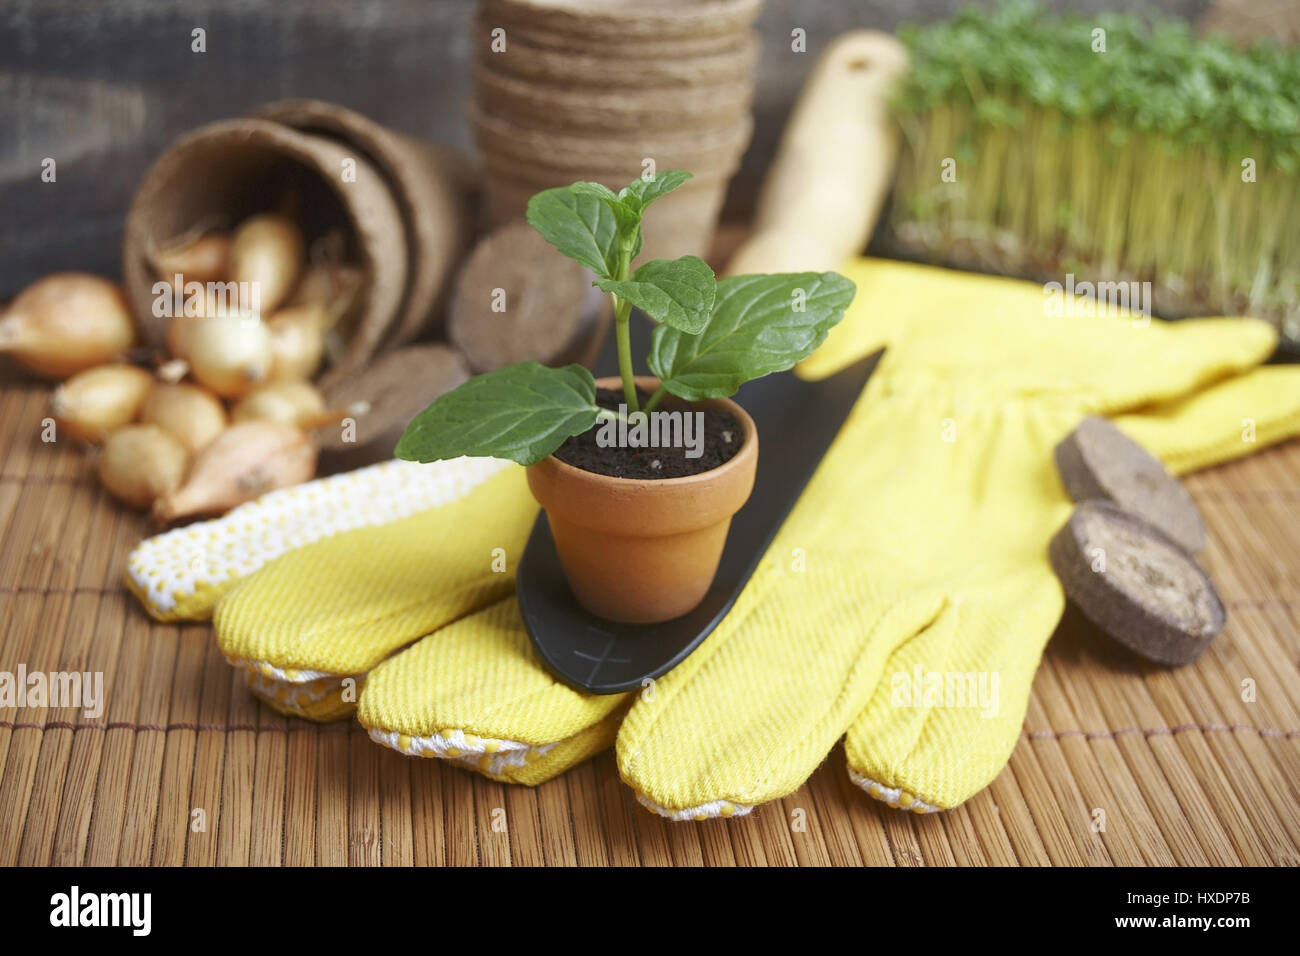 Setzlinge and onions with glove and shovel, Saplings and onions with gloves and shovel |, Setzlinge und Zwiebeln - Stock Image